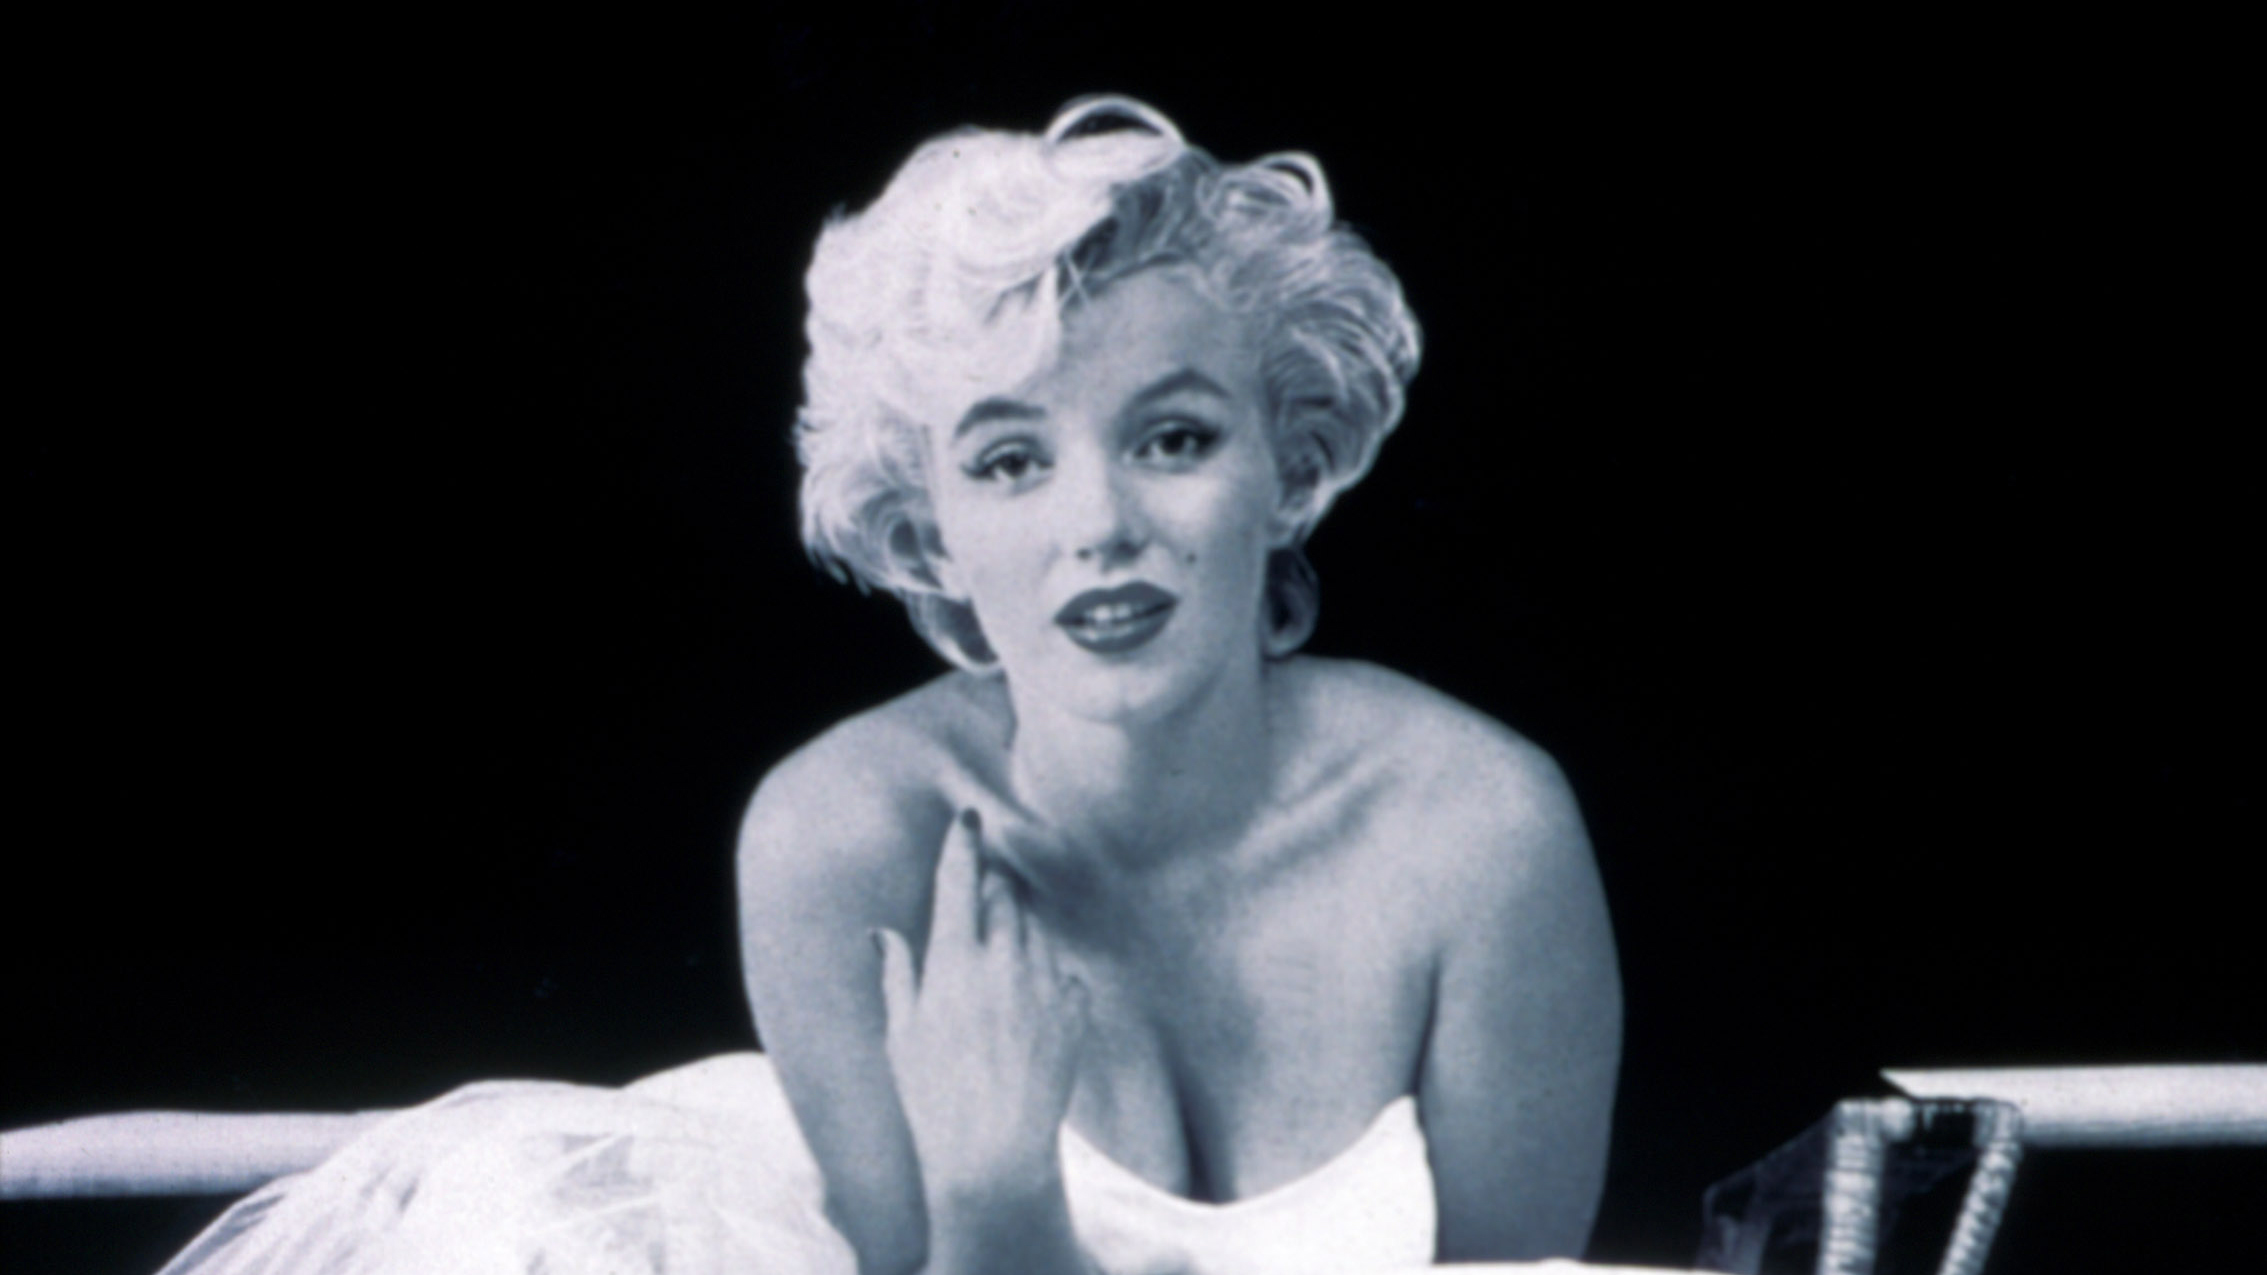 Podcast Reveals Marilyn Monroe's Tragic Death Could Have Been 'Just a Big Cover Up'